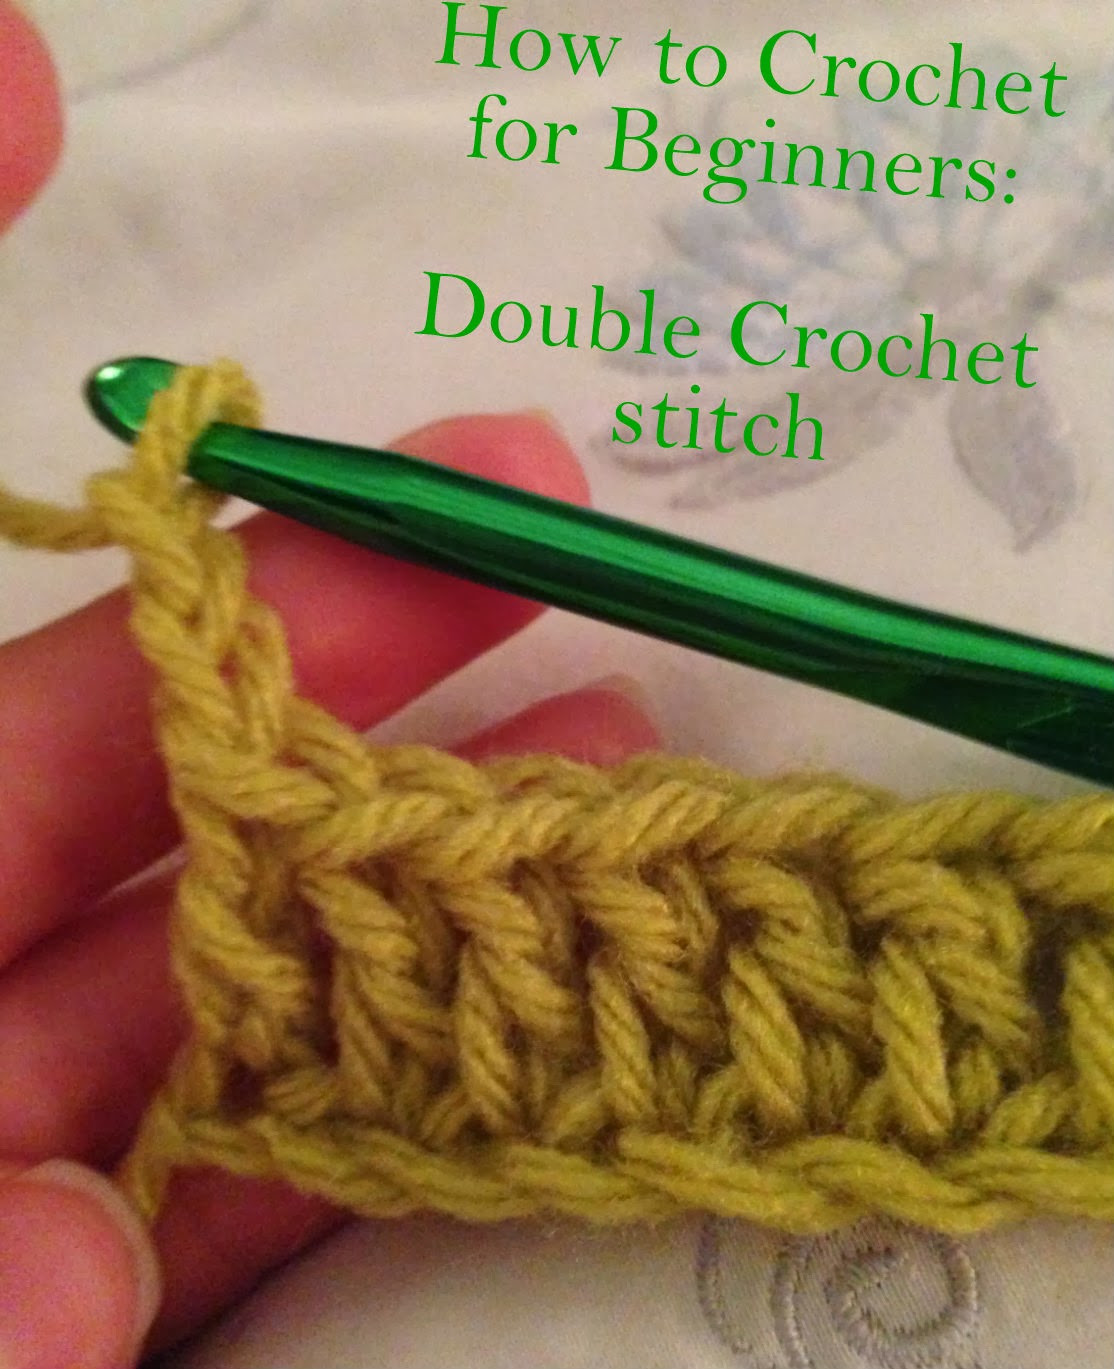 Crochet for Beginners Fresh Crocheting for Beginners Part 2 How to Double Crochet Of Perfect 48 Ideas Crochet for Beginners